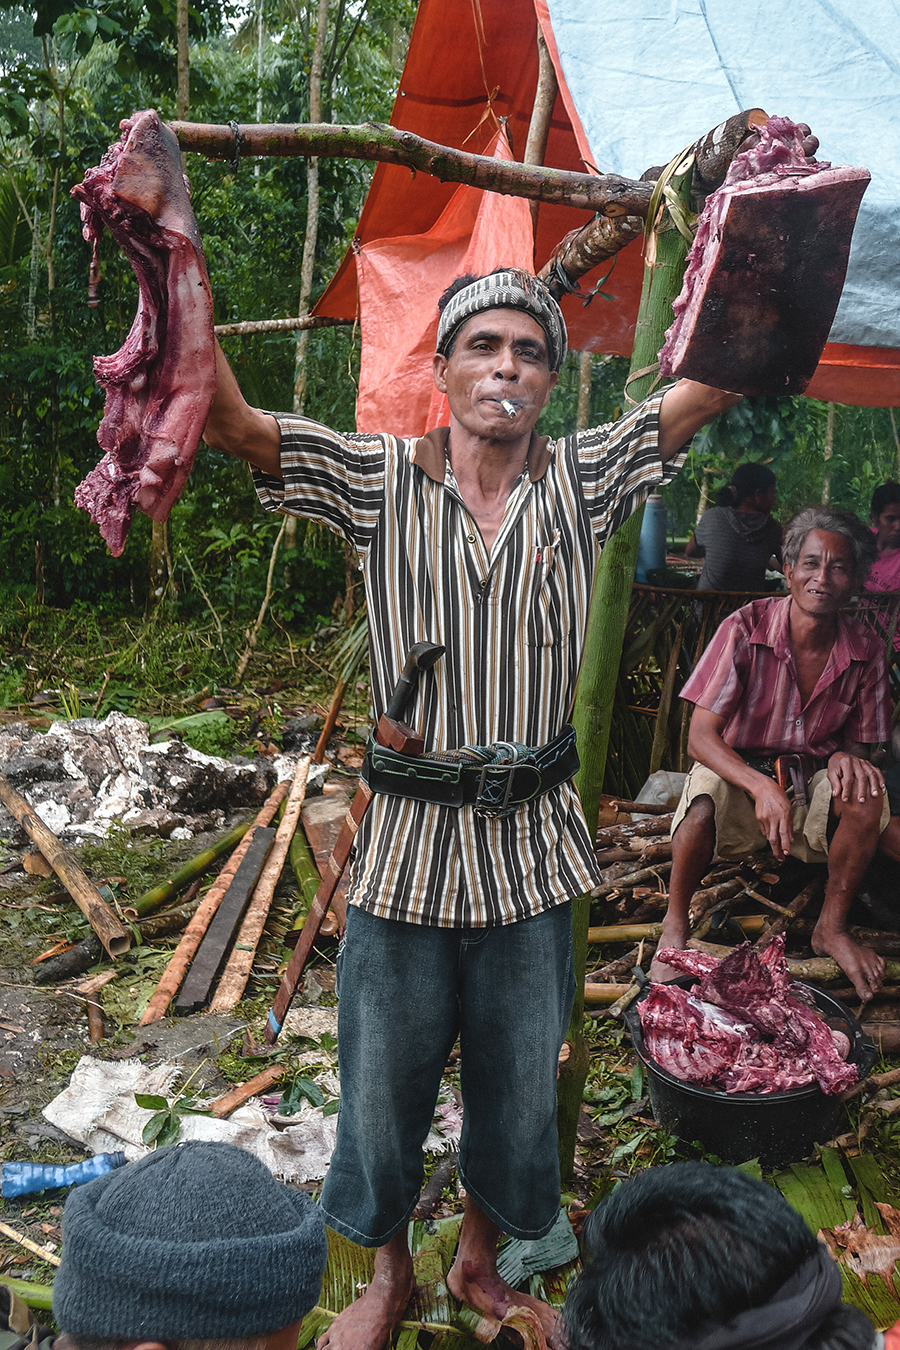 A man holding up slabs of meat from animals sacrificed during a funeral in Sumba, Indonesia.